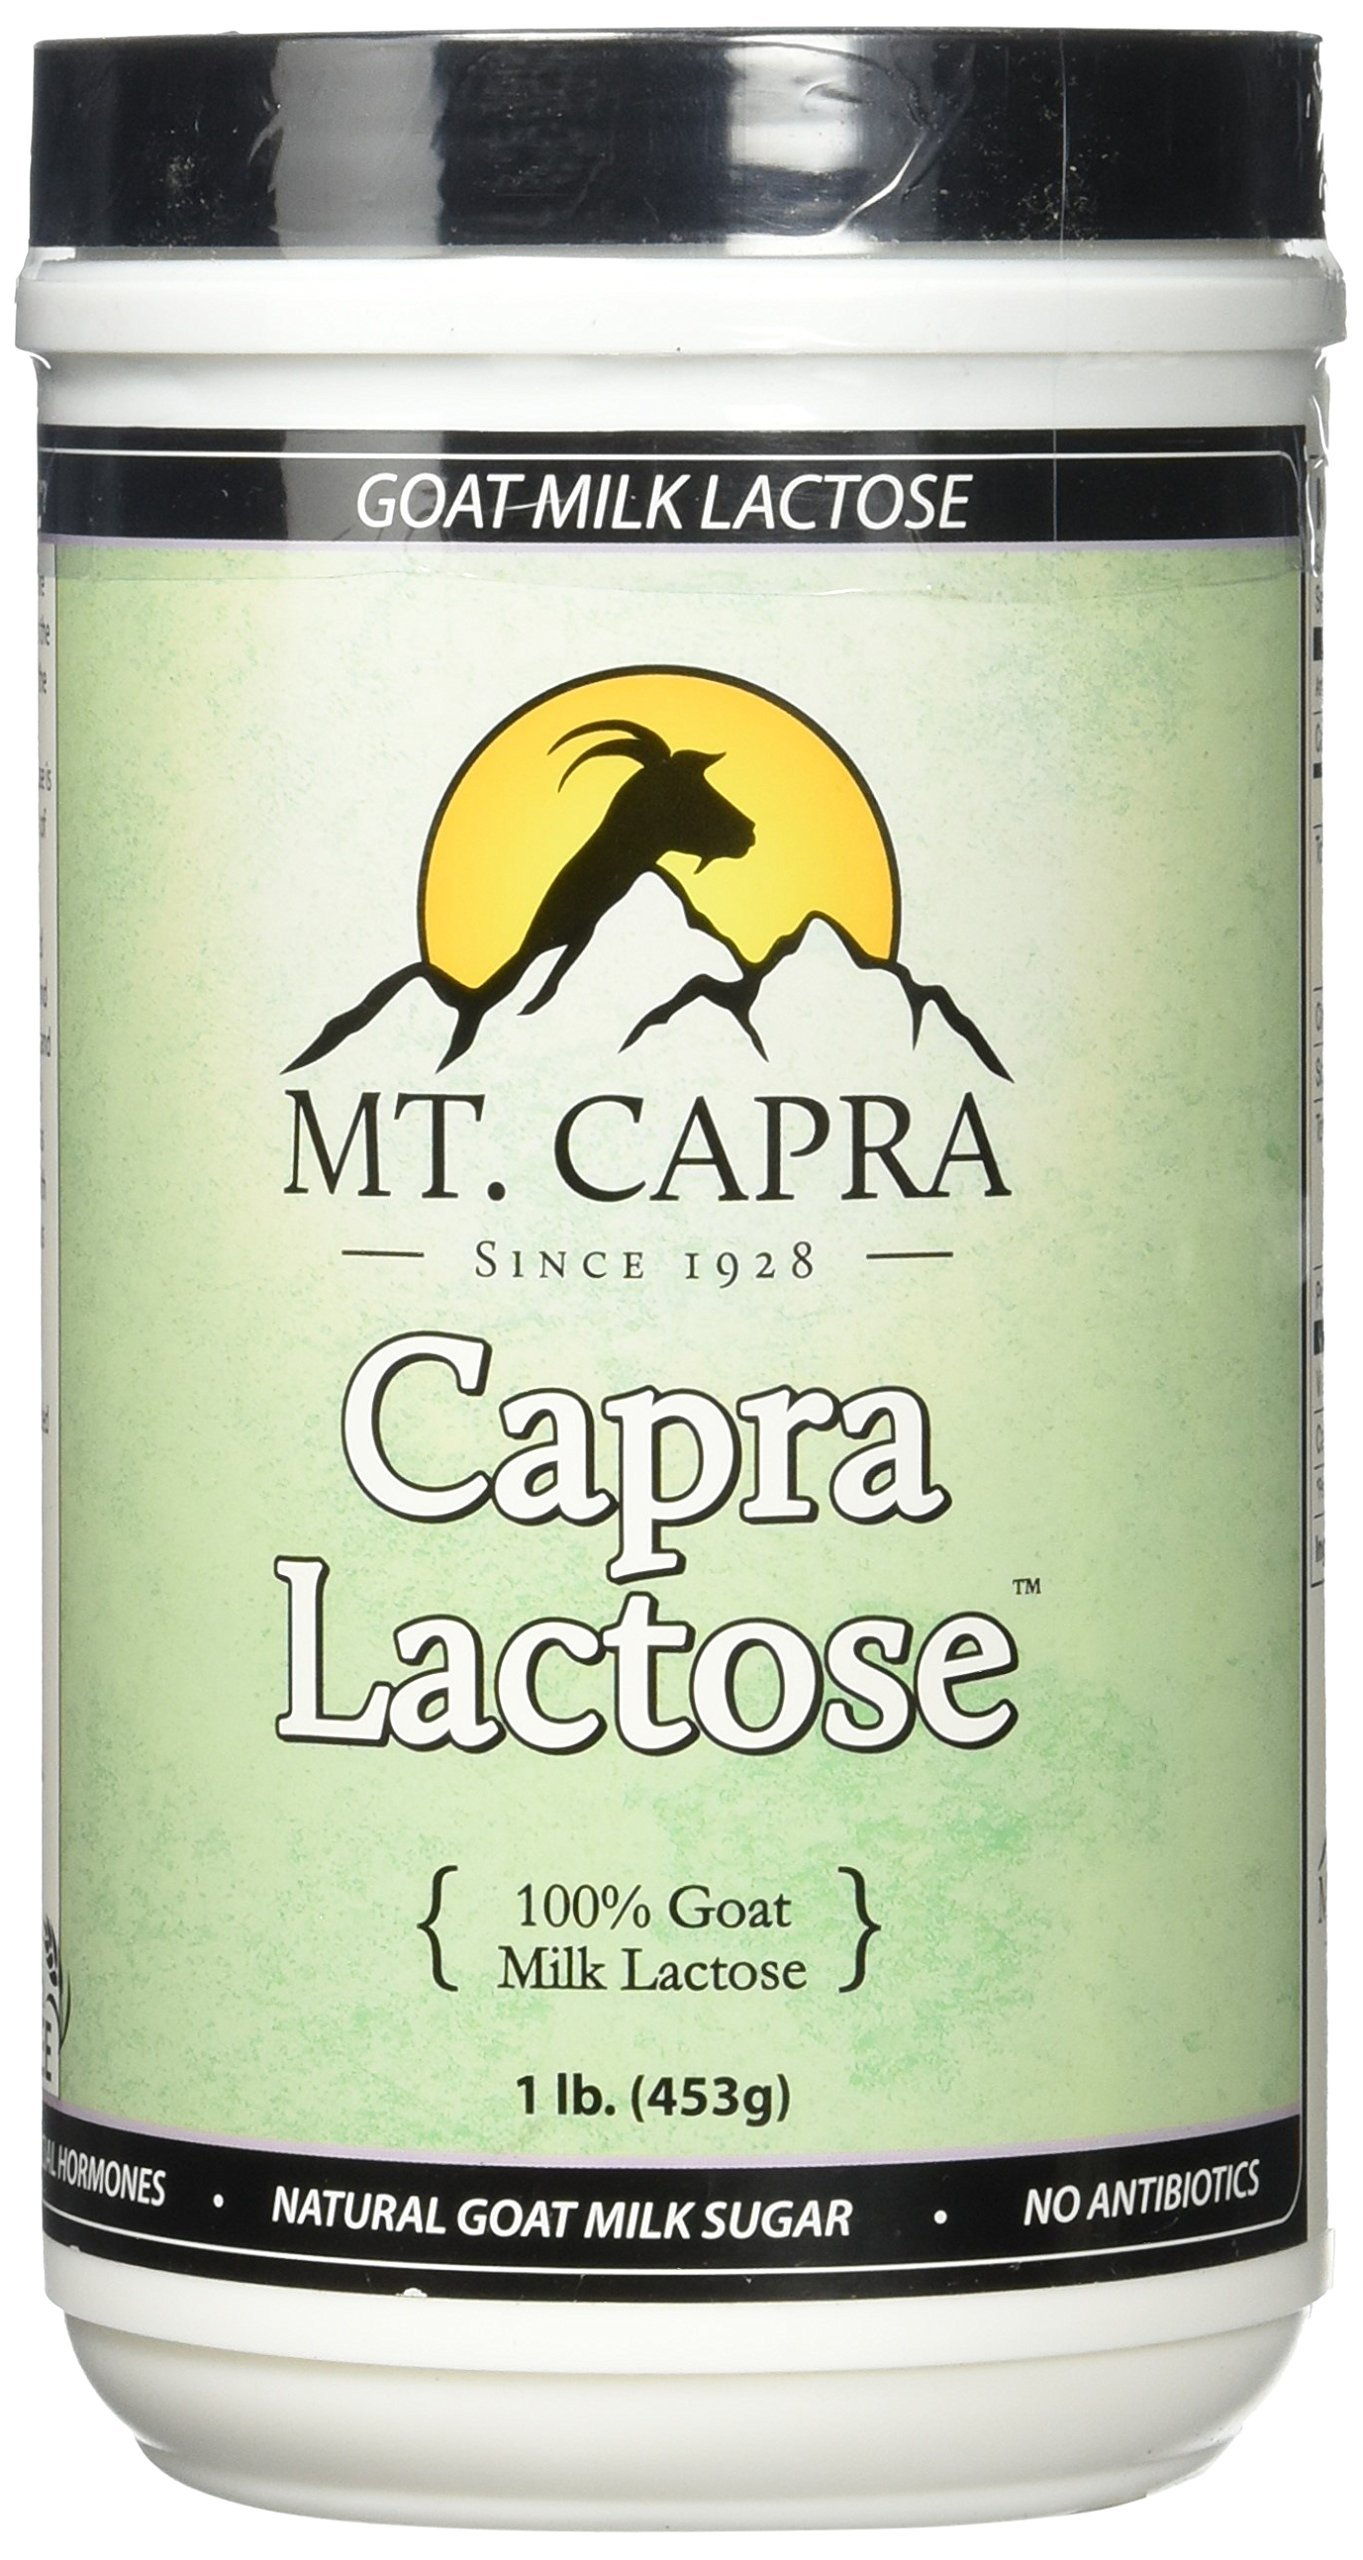 Goat Milk Lactose Powder by Mt. Capra - CapraLactose Pure Milk Sugar From Goats Whey For Homemade Baby Infant Formula, Boost Beneficial Gut Bacteria Lactobacillus Acidophilus In GI-Tract - 1 Pound